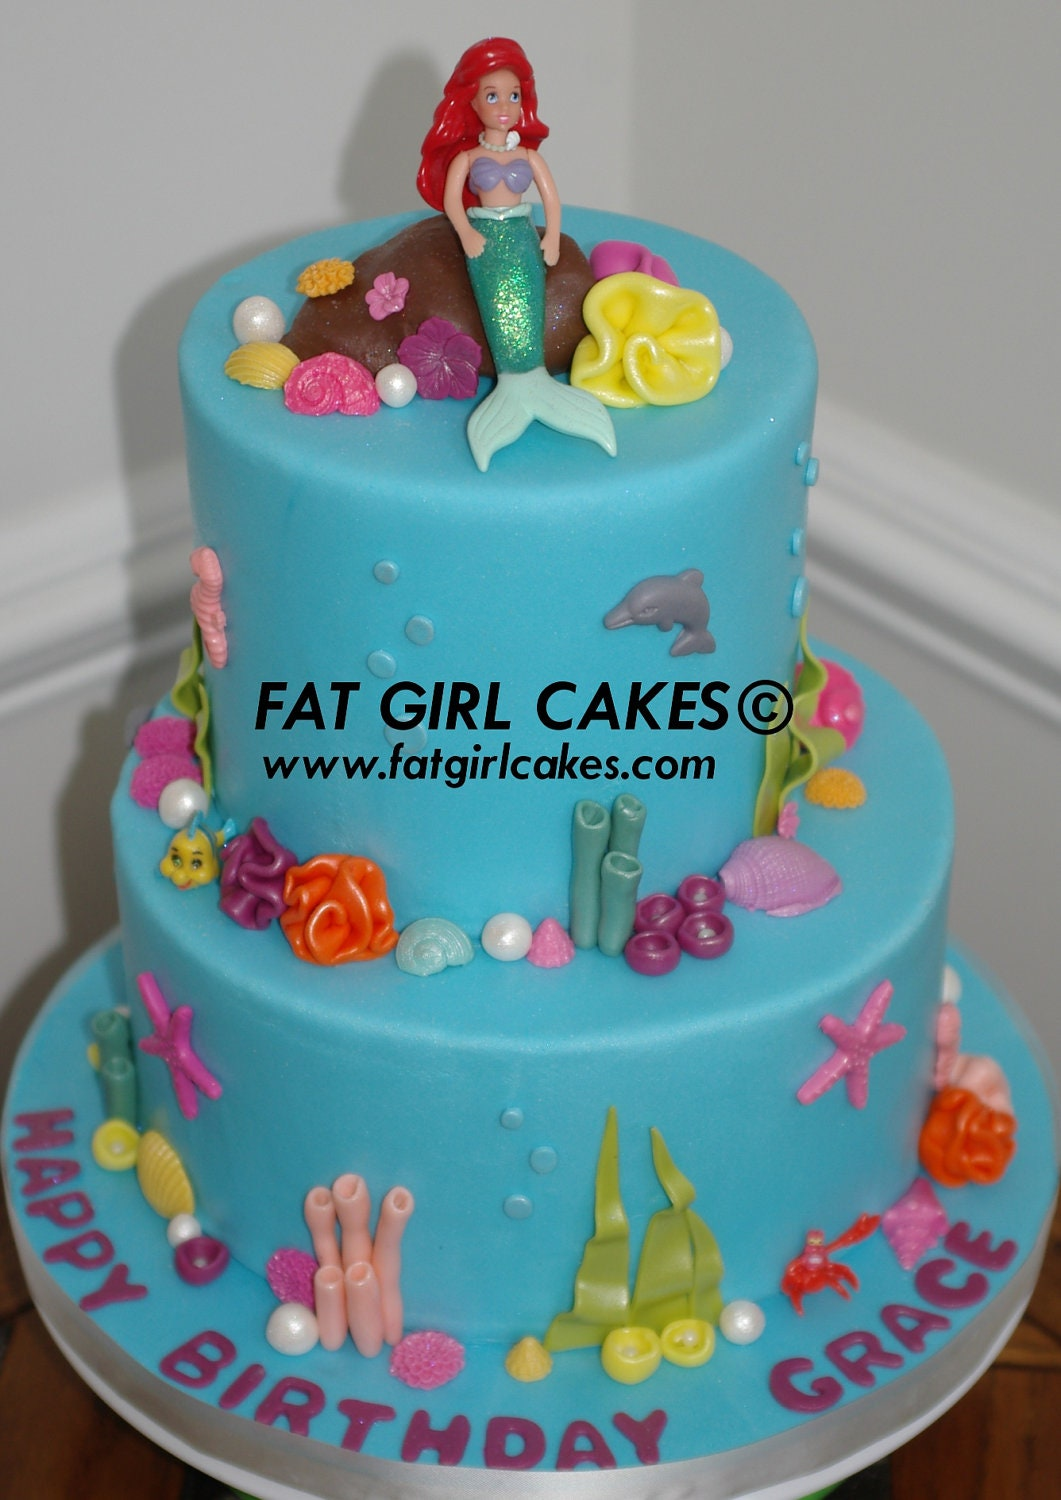 Fondant Under the Sea cake decorations by FatGirlCakes on Etsy